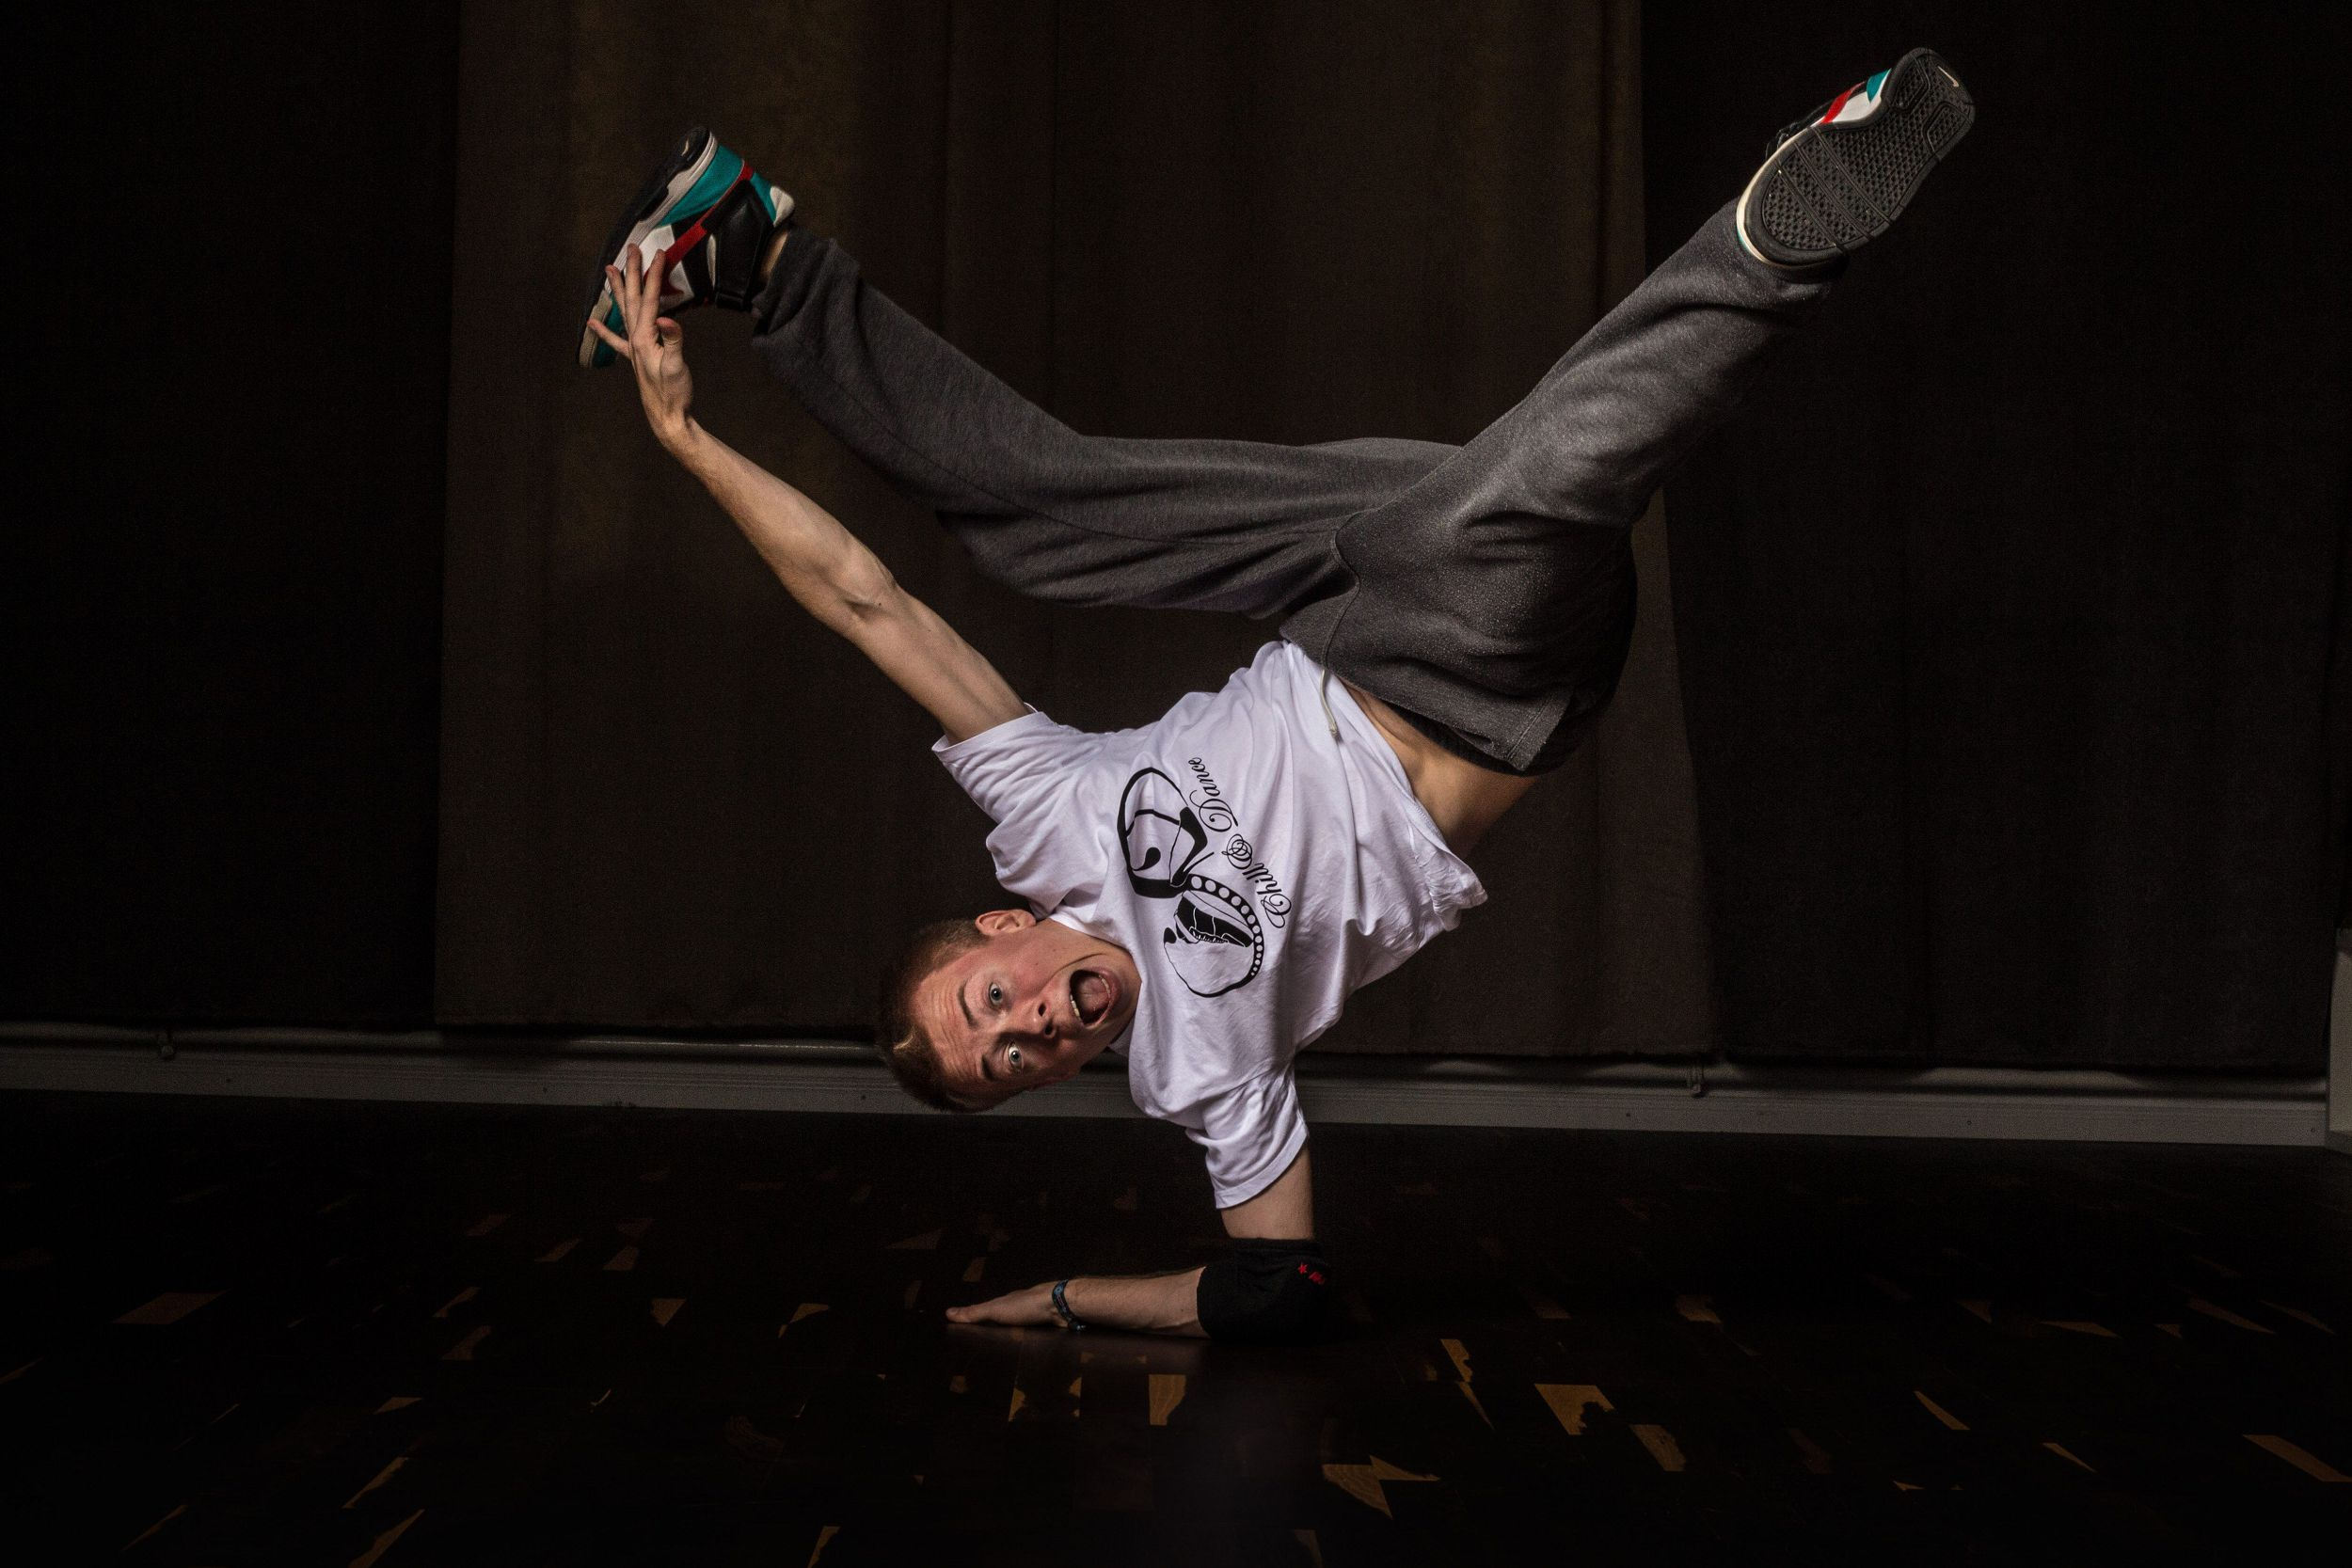 Breakdance Photos